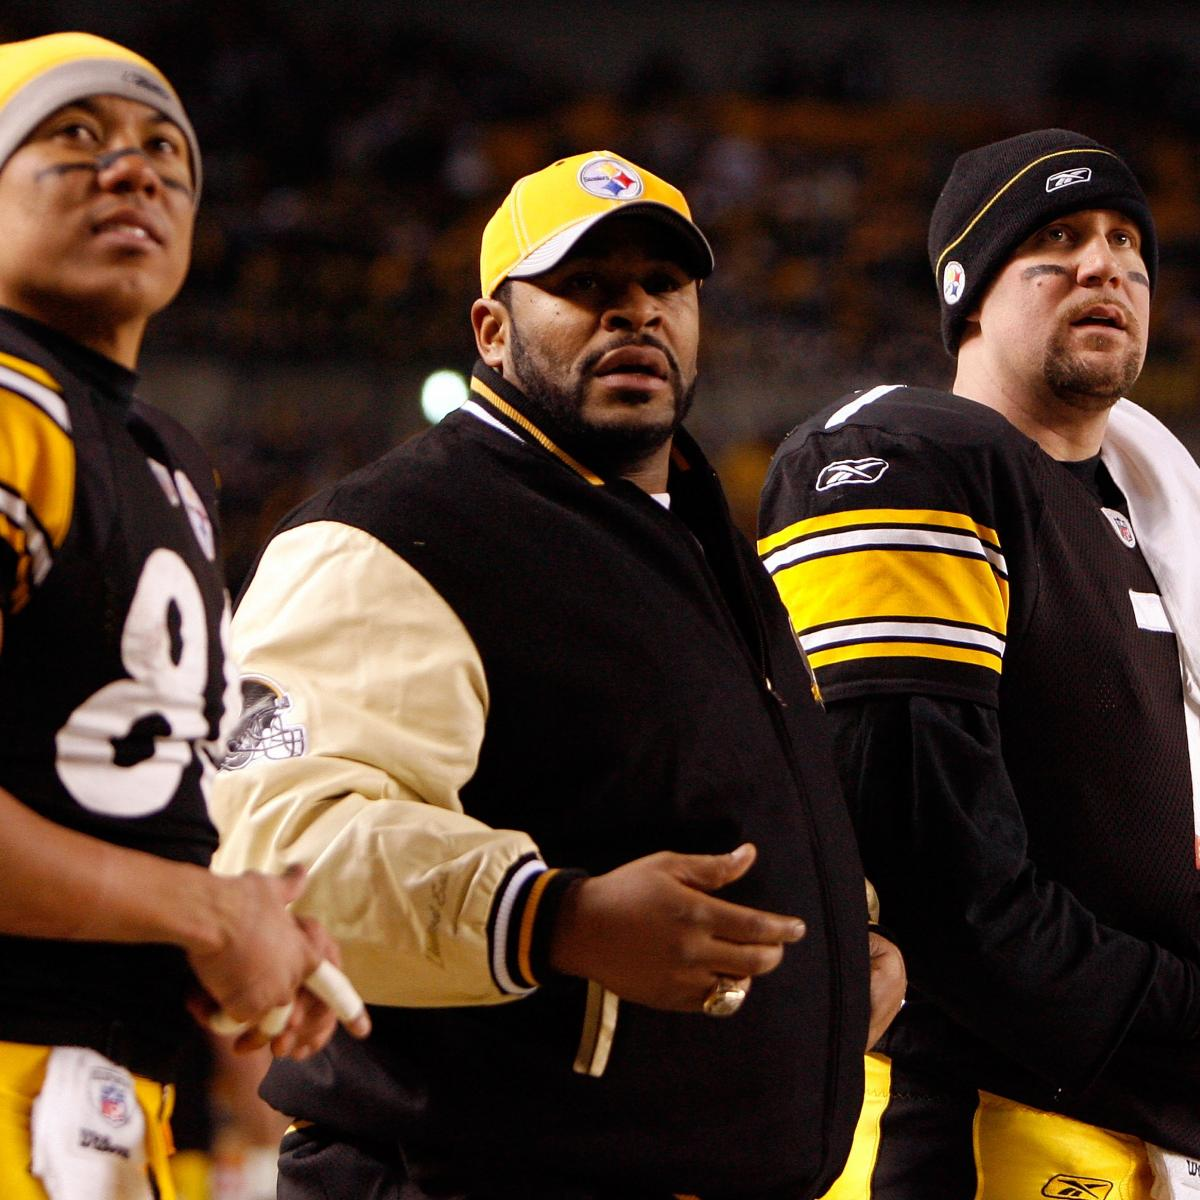 c46fd0e2224 Ranking the Pittsburgh Steelers  Top 25 Players of All Time ...